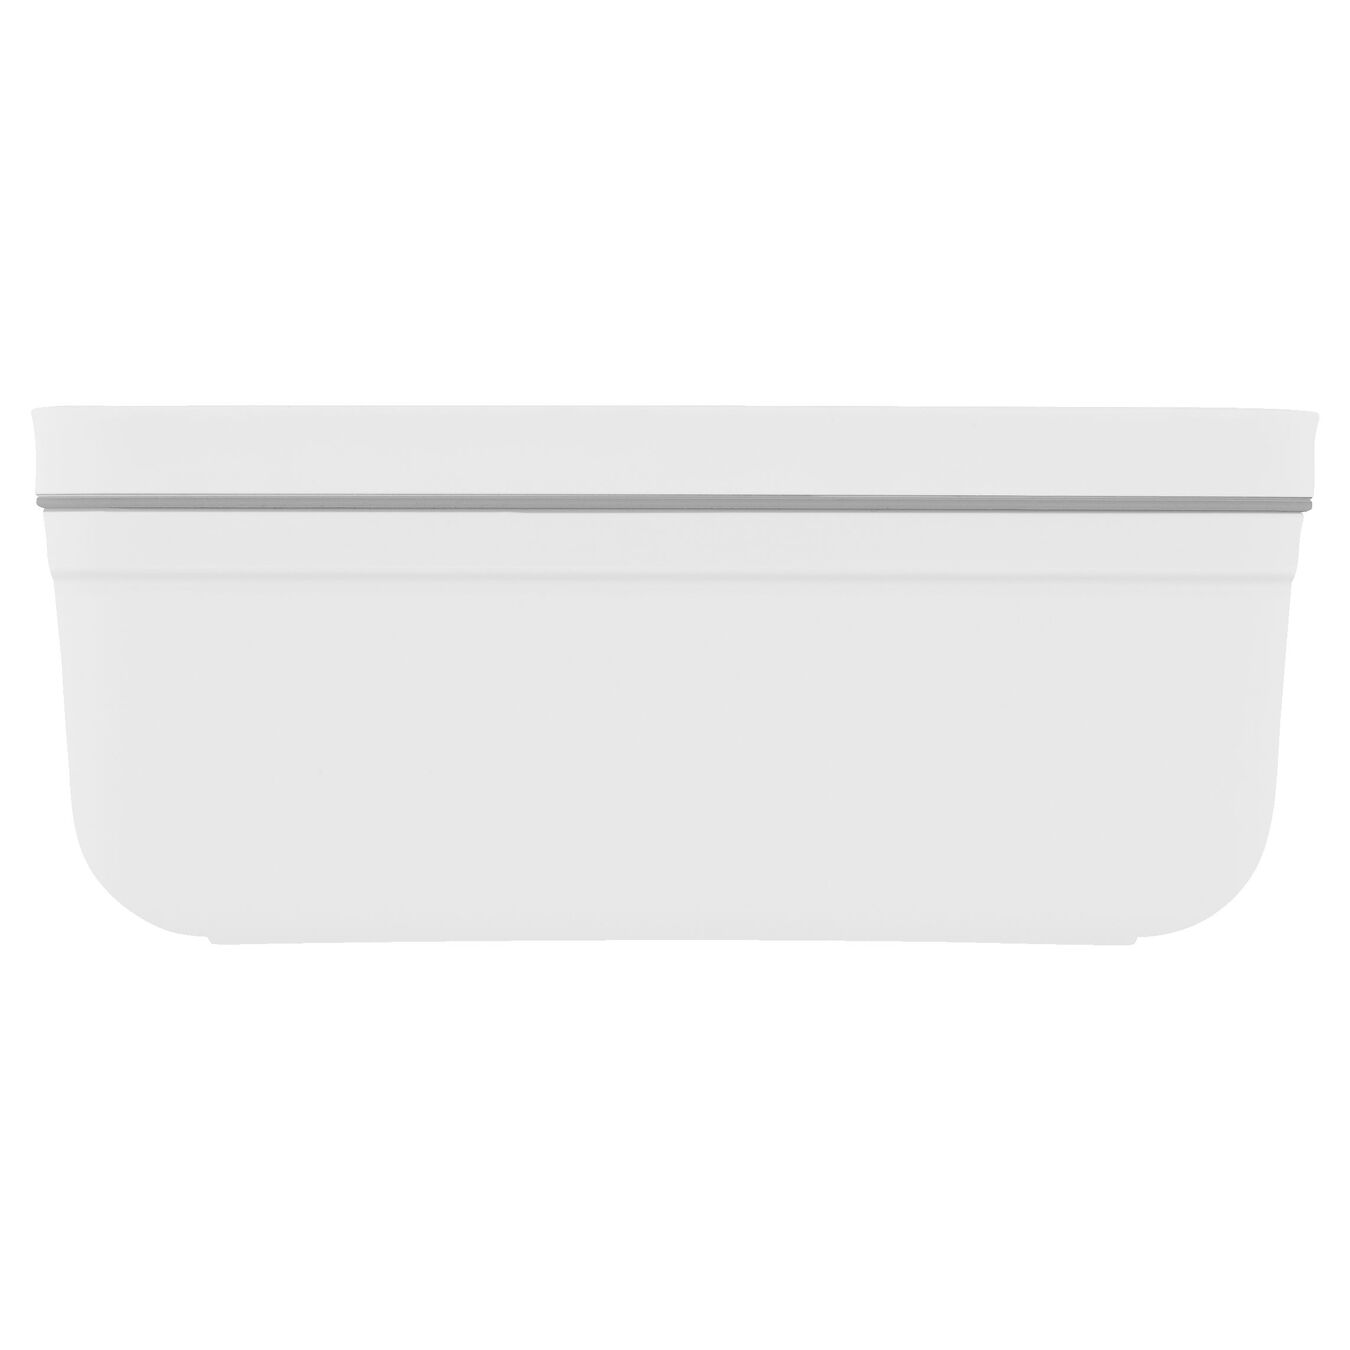 medium Vacuum lunch box, Plastic, white,,large 2